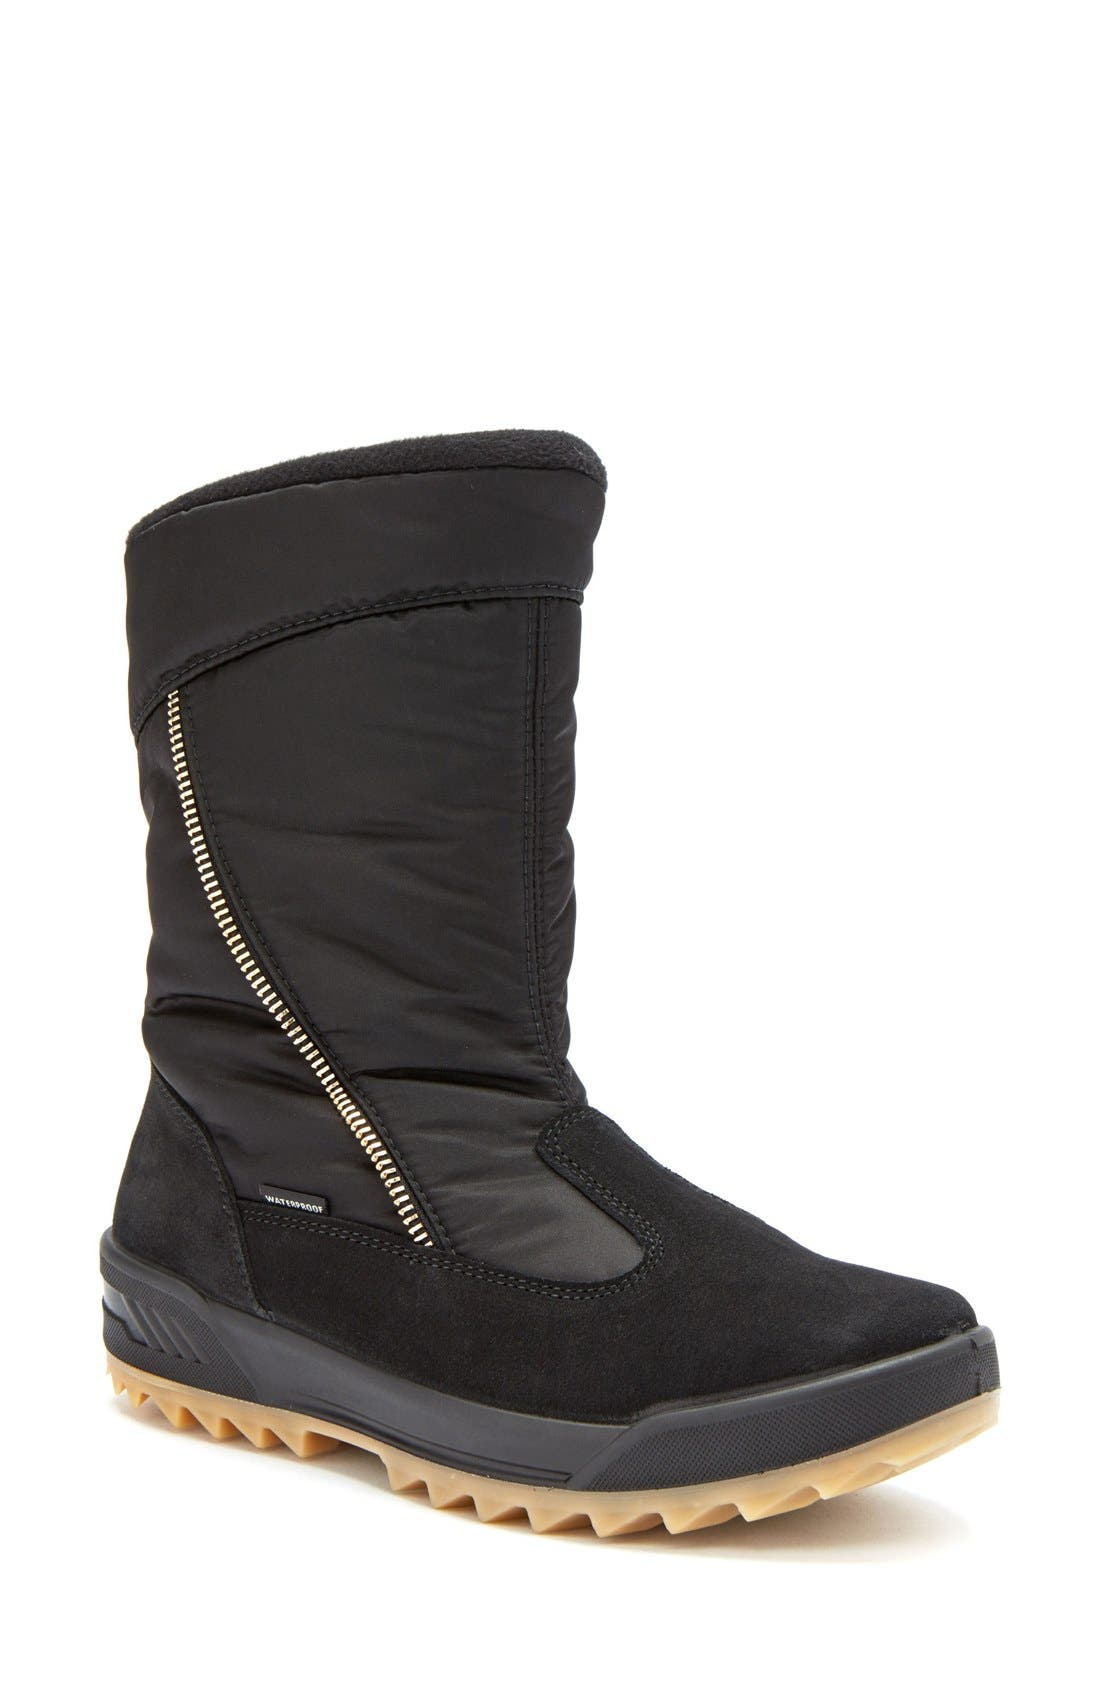 BLONDO Iceland Waterproof Snow Boot